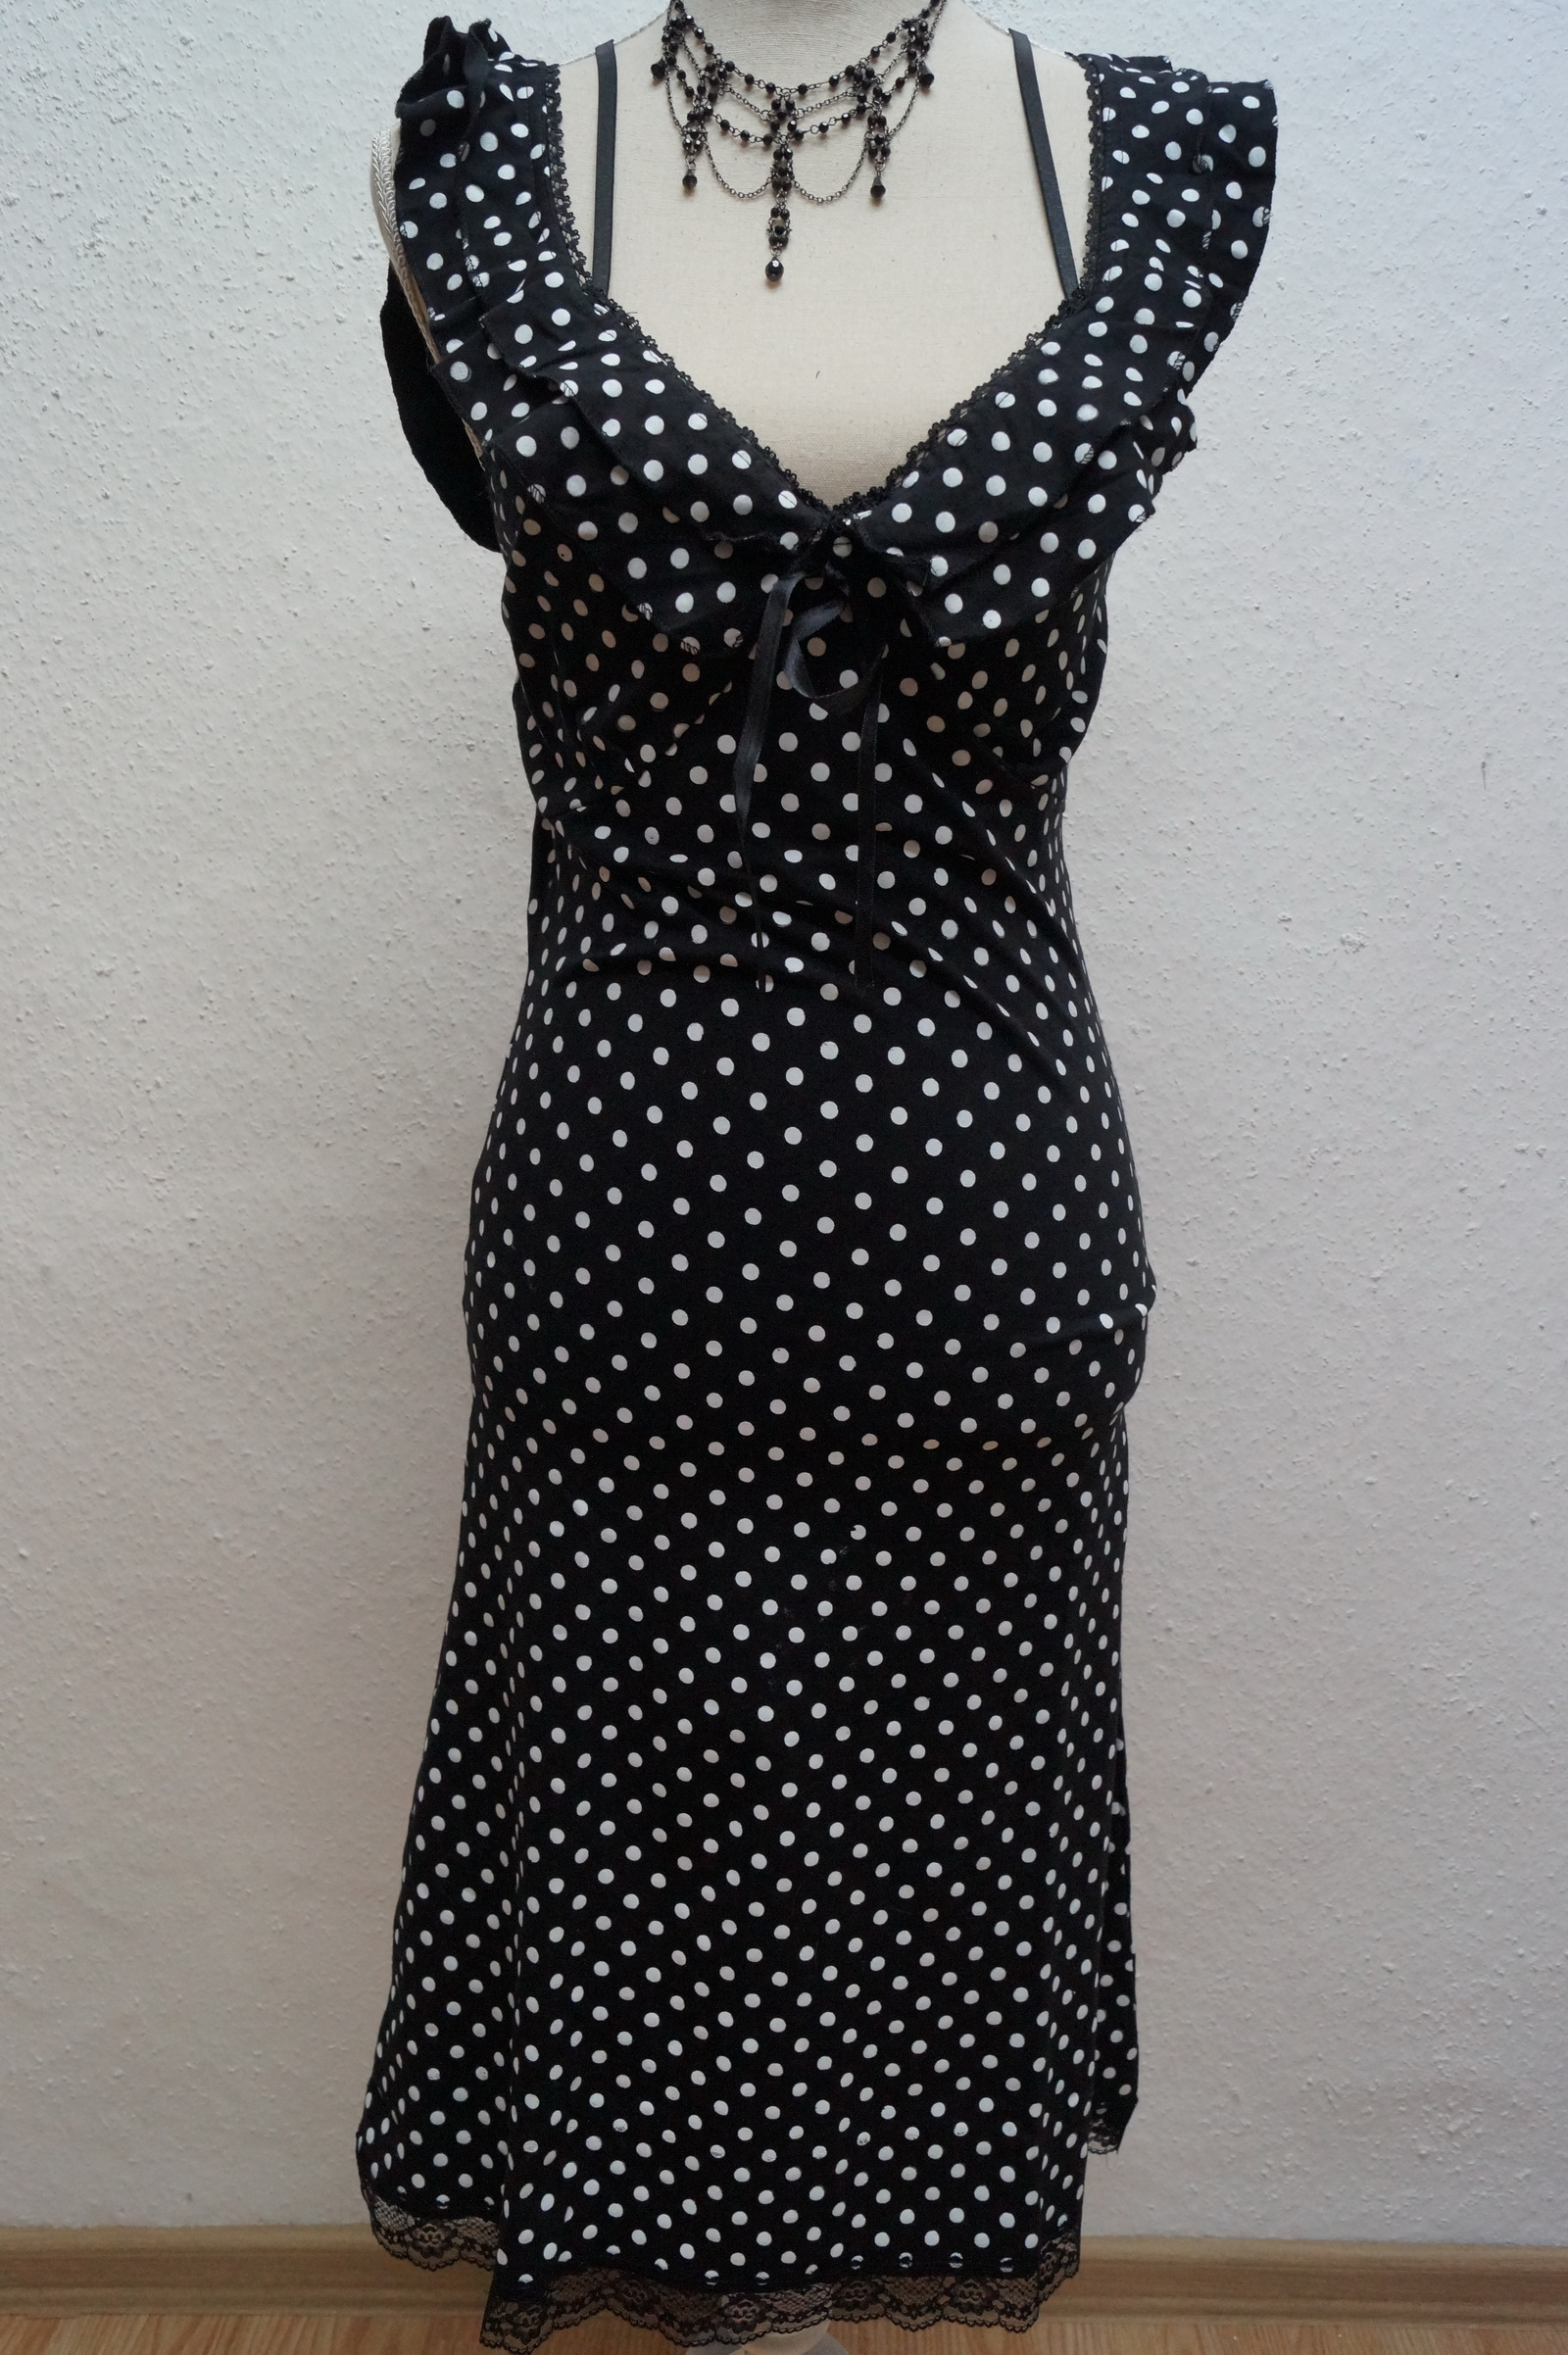 süßes Sommerkleid gepunktet Queen of Darkness Rockabilly Polka Dots Gr.M oder L